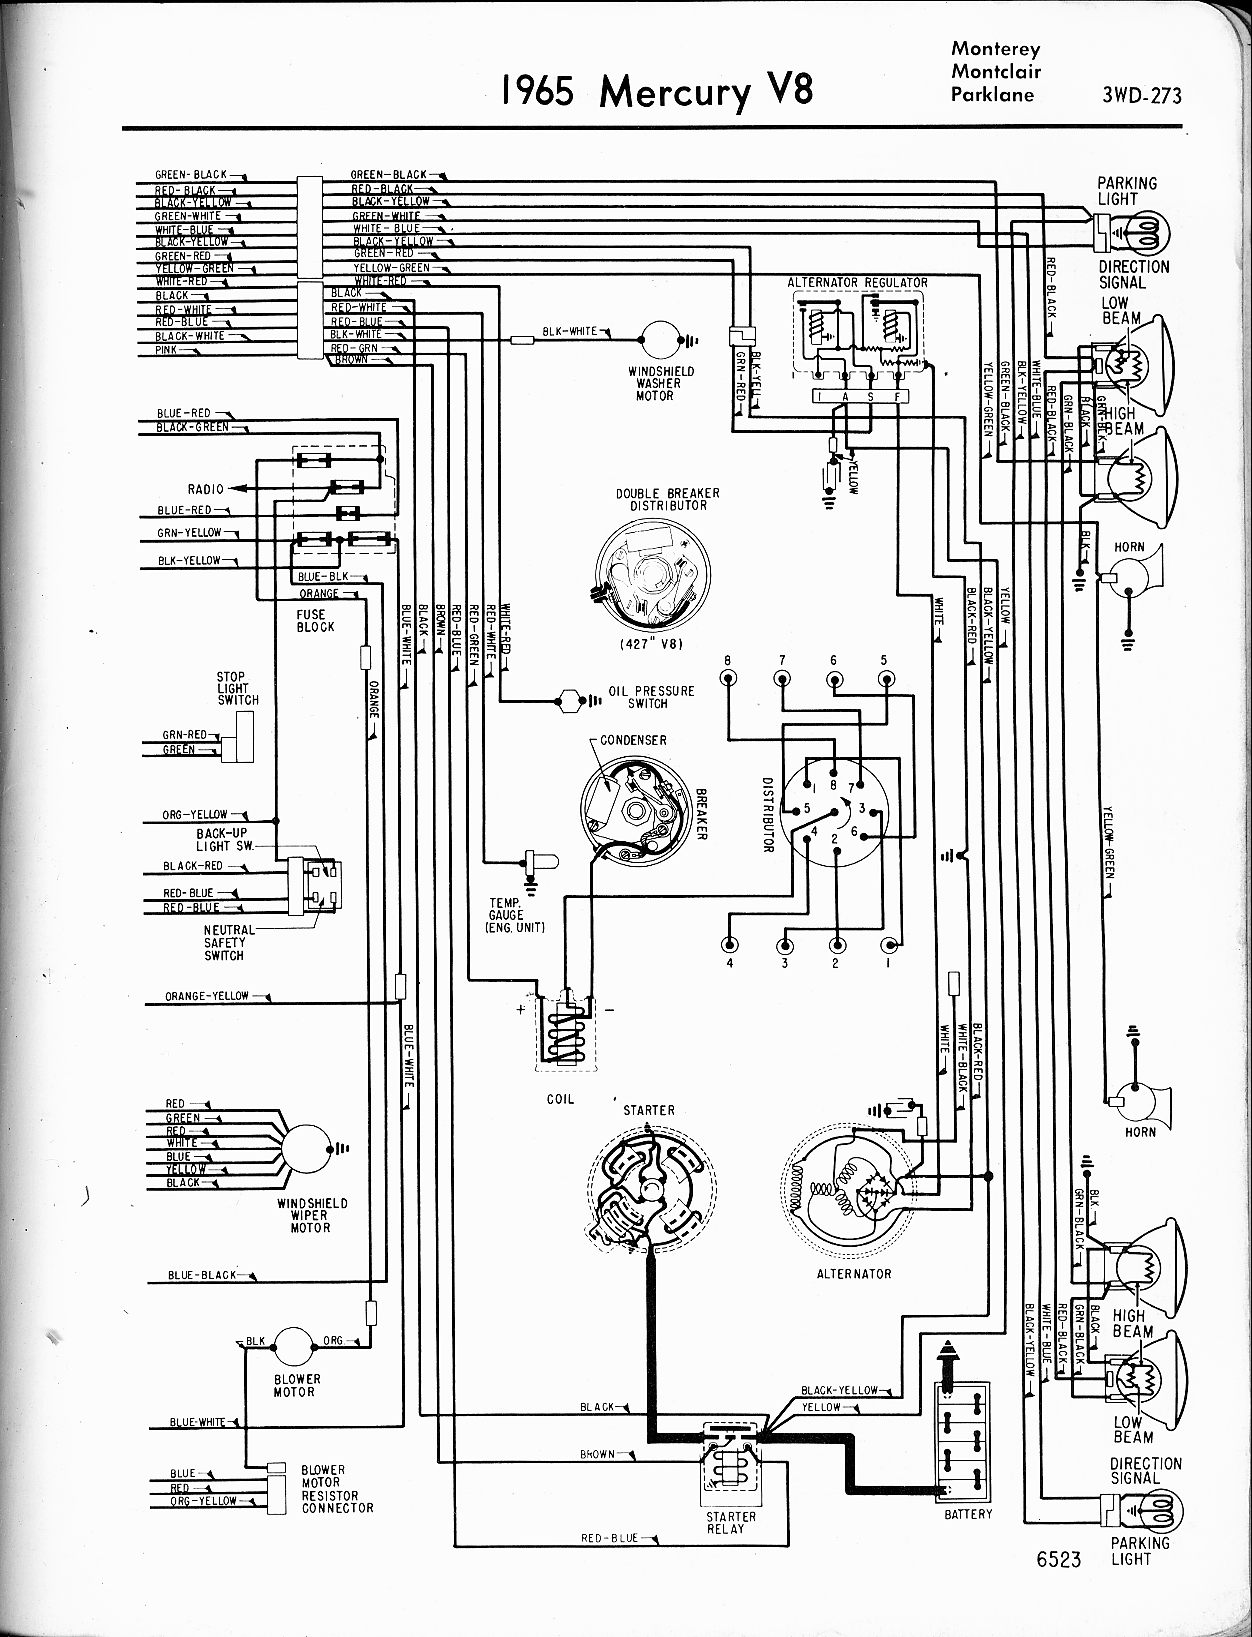 Mercury Cougar Engine Swap on 2007 chrysler pt cruiser engine diagrams